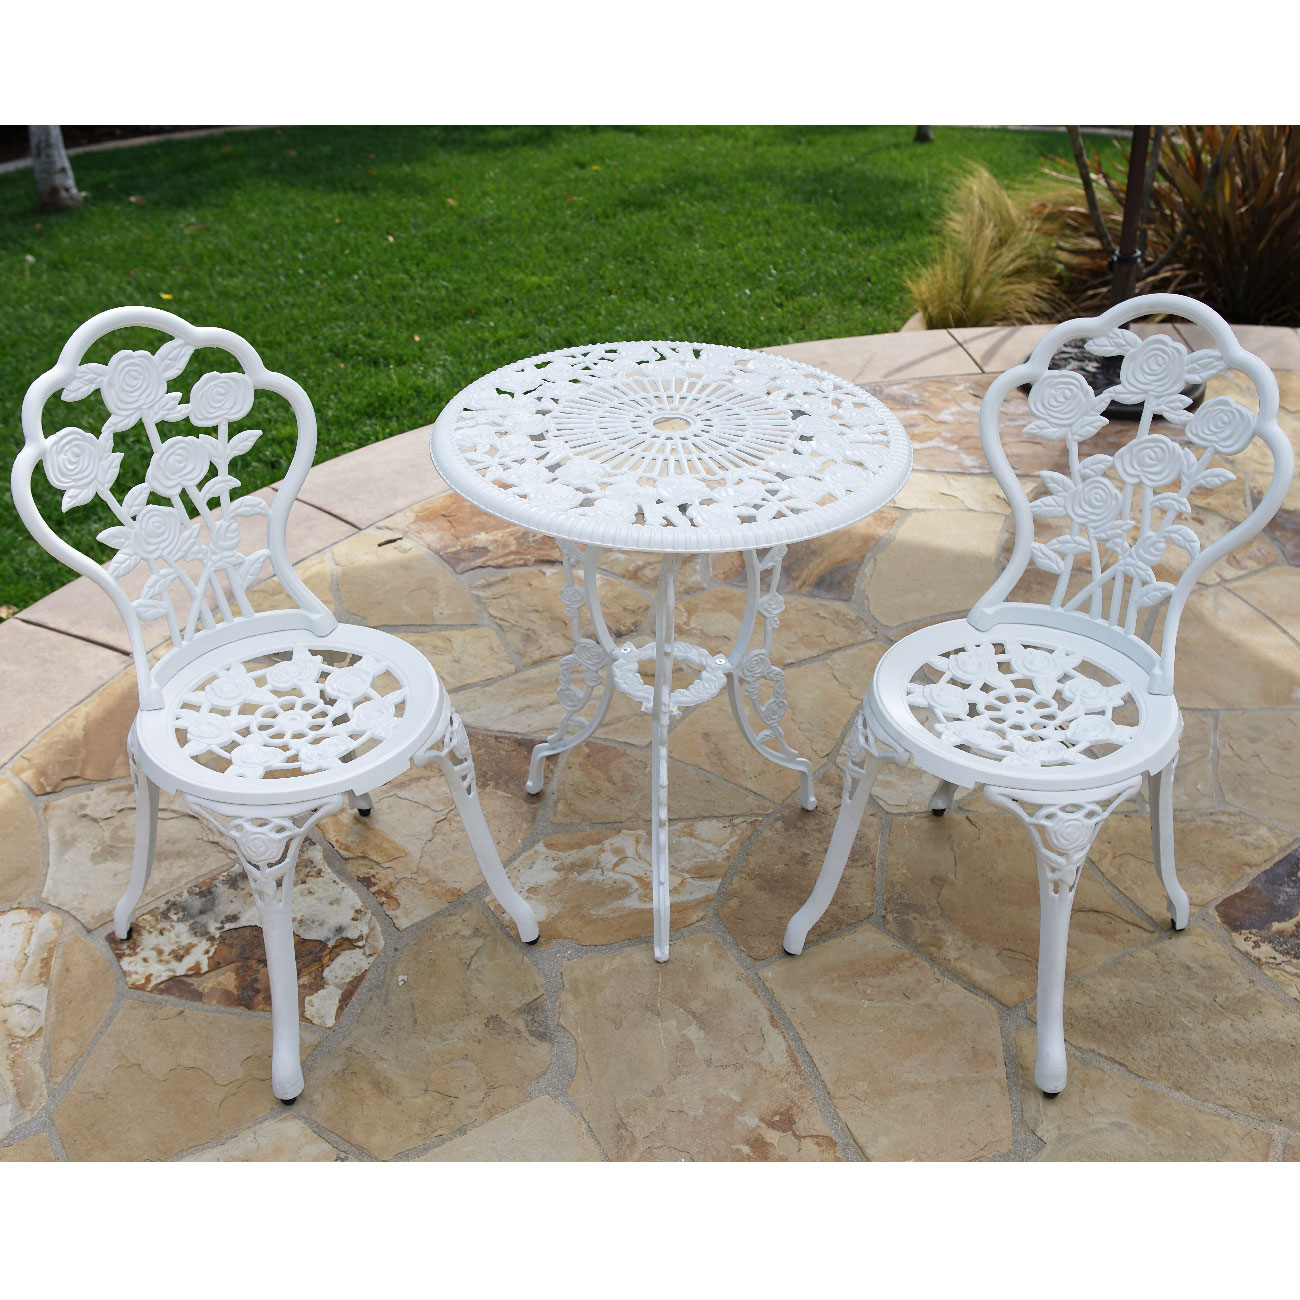 white chairs sets outdoor furniture for small spaces | 3pcs Outdoor Patio Furniture Cast Aluminum Bistro Set ...